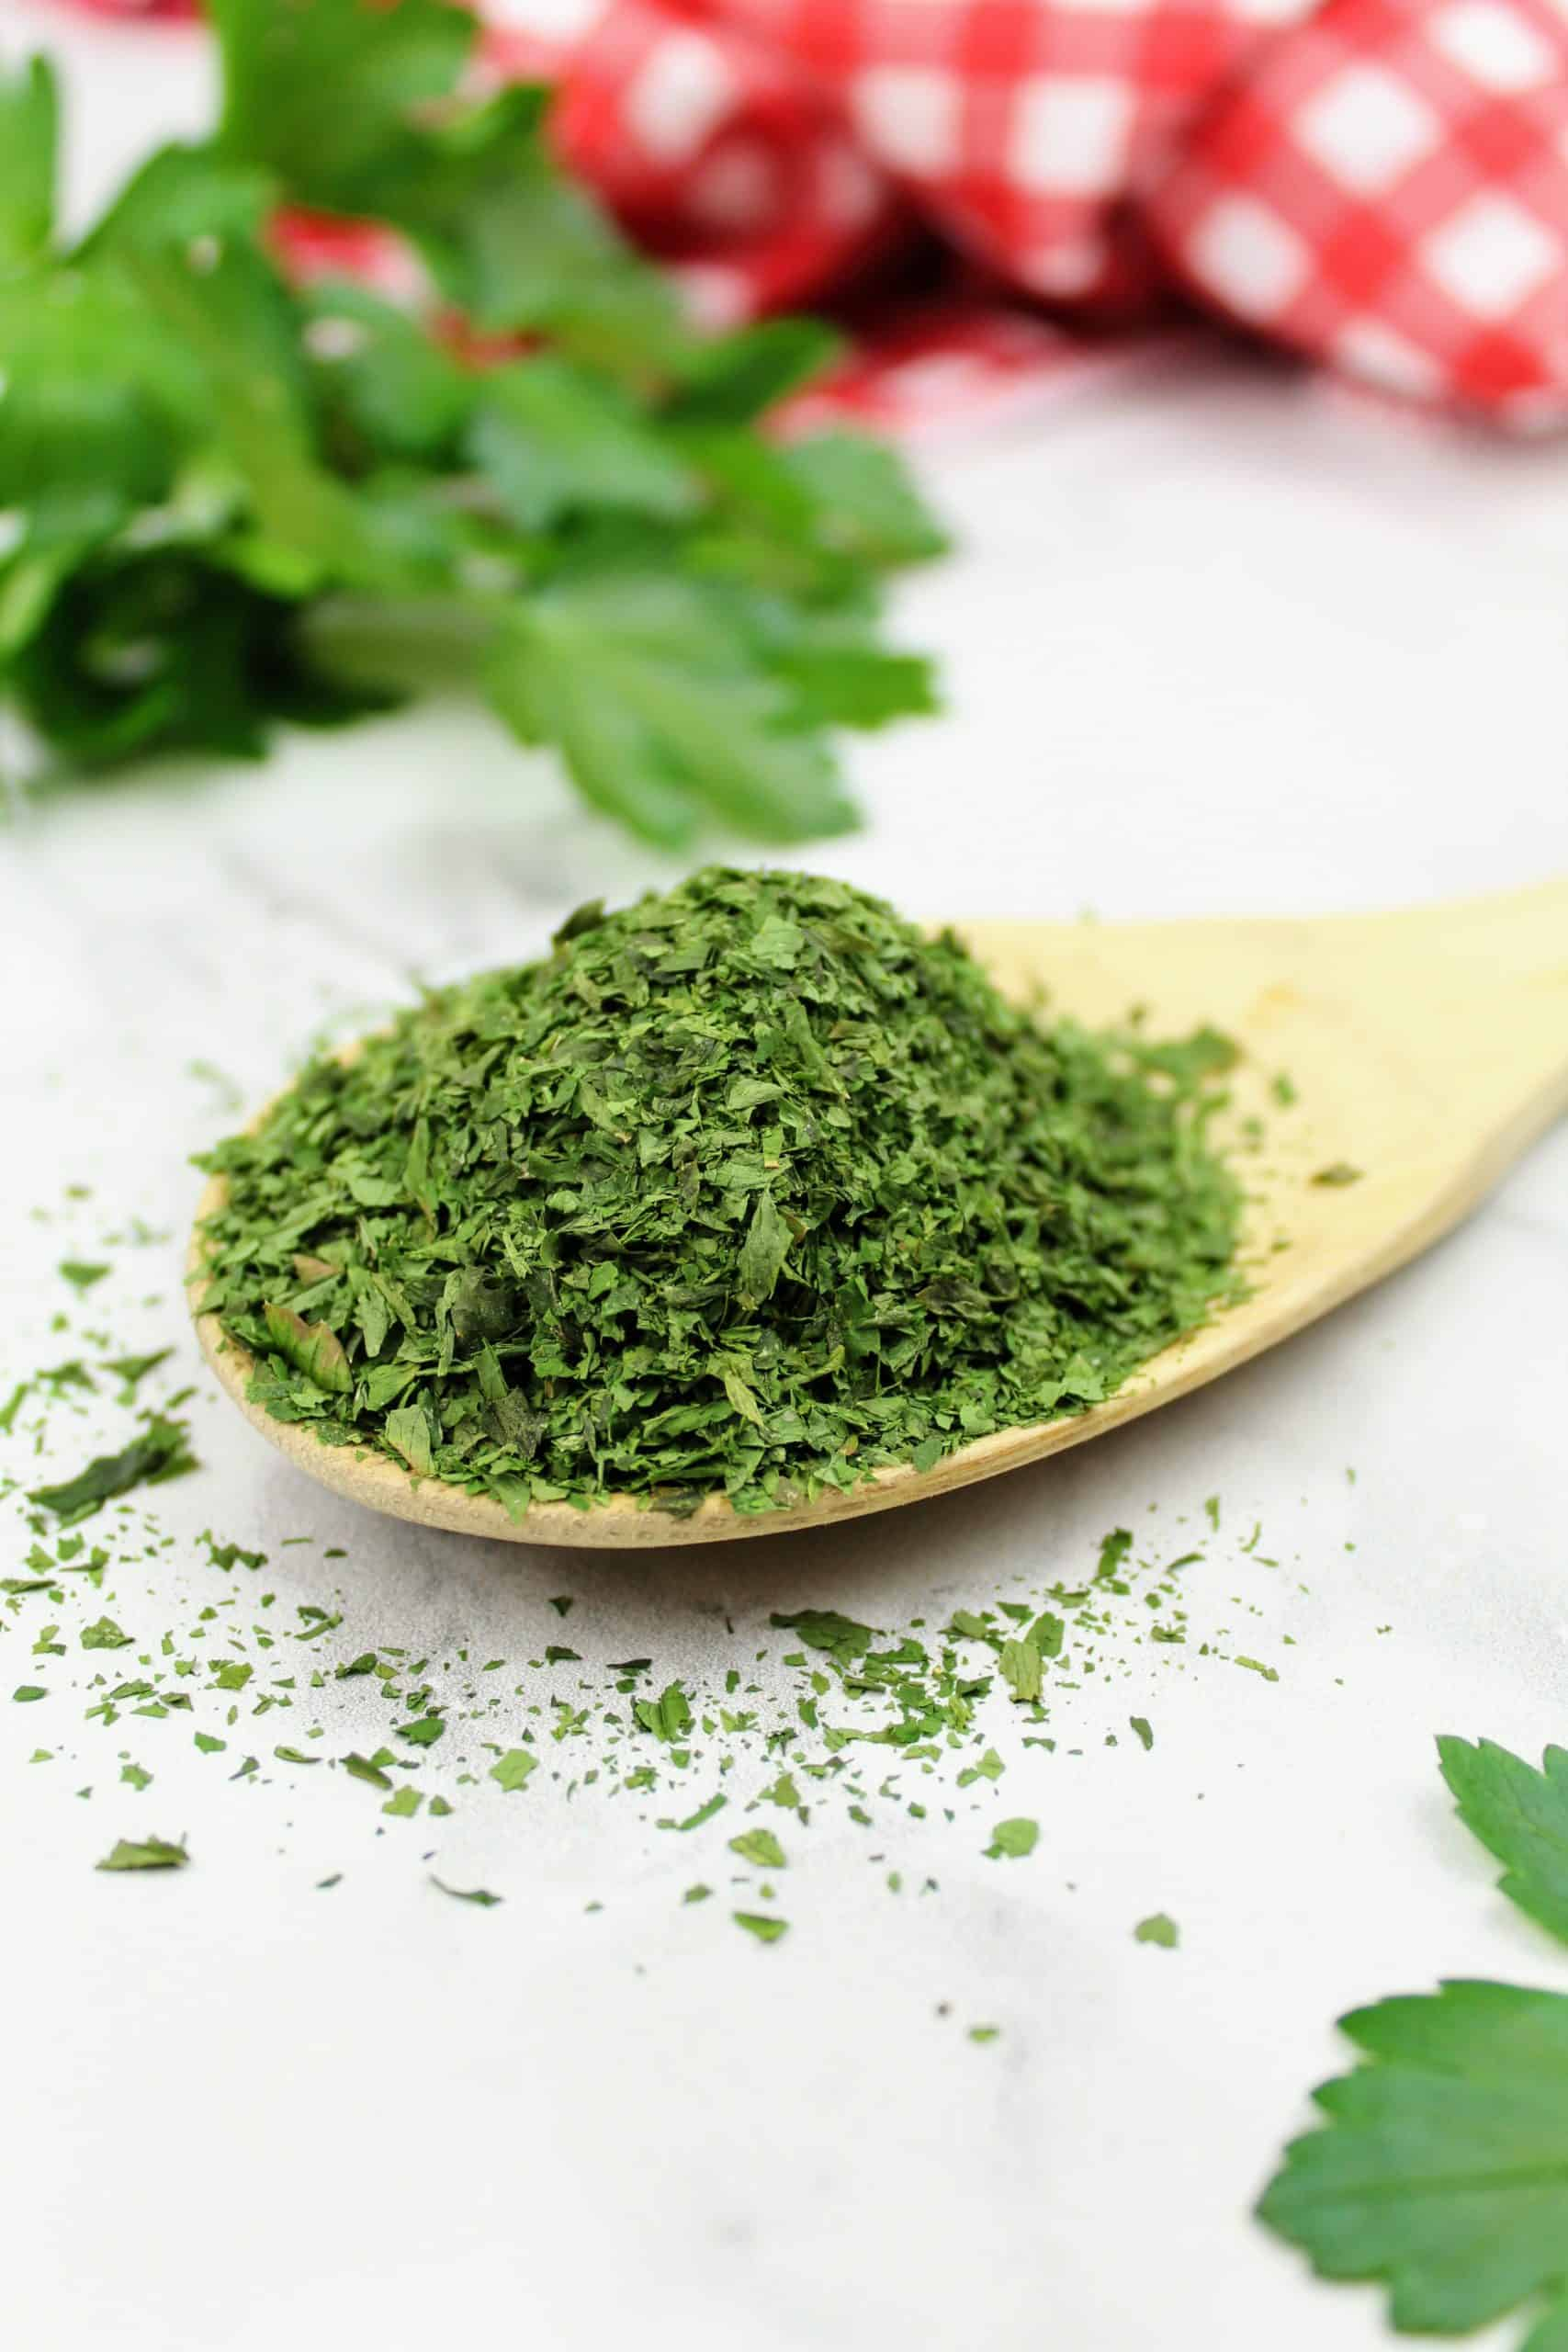 How to Oven Dry Parsley